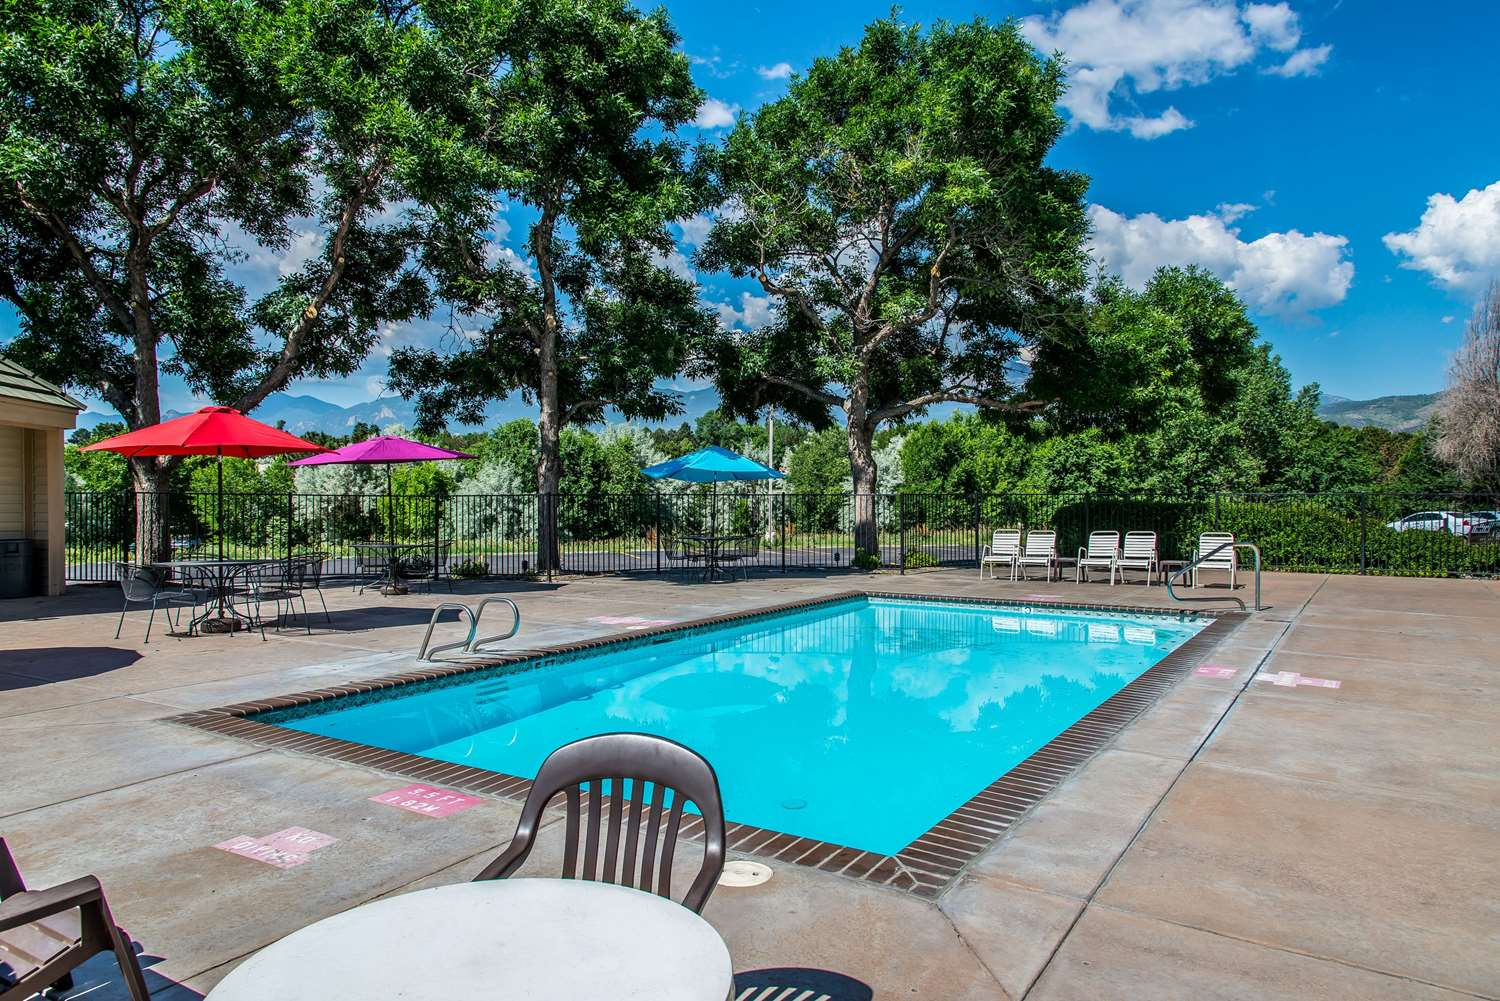 Pool - Quality Inn & Suites Garden of Gods Colorado Springs